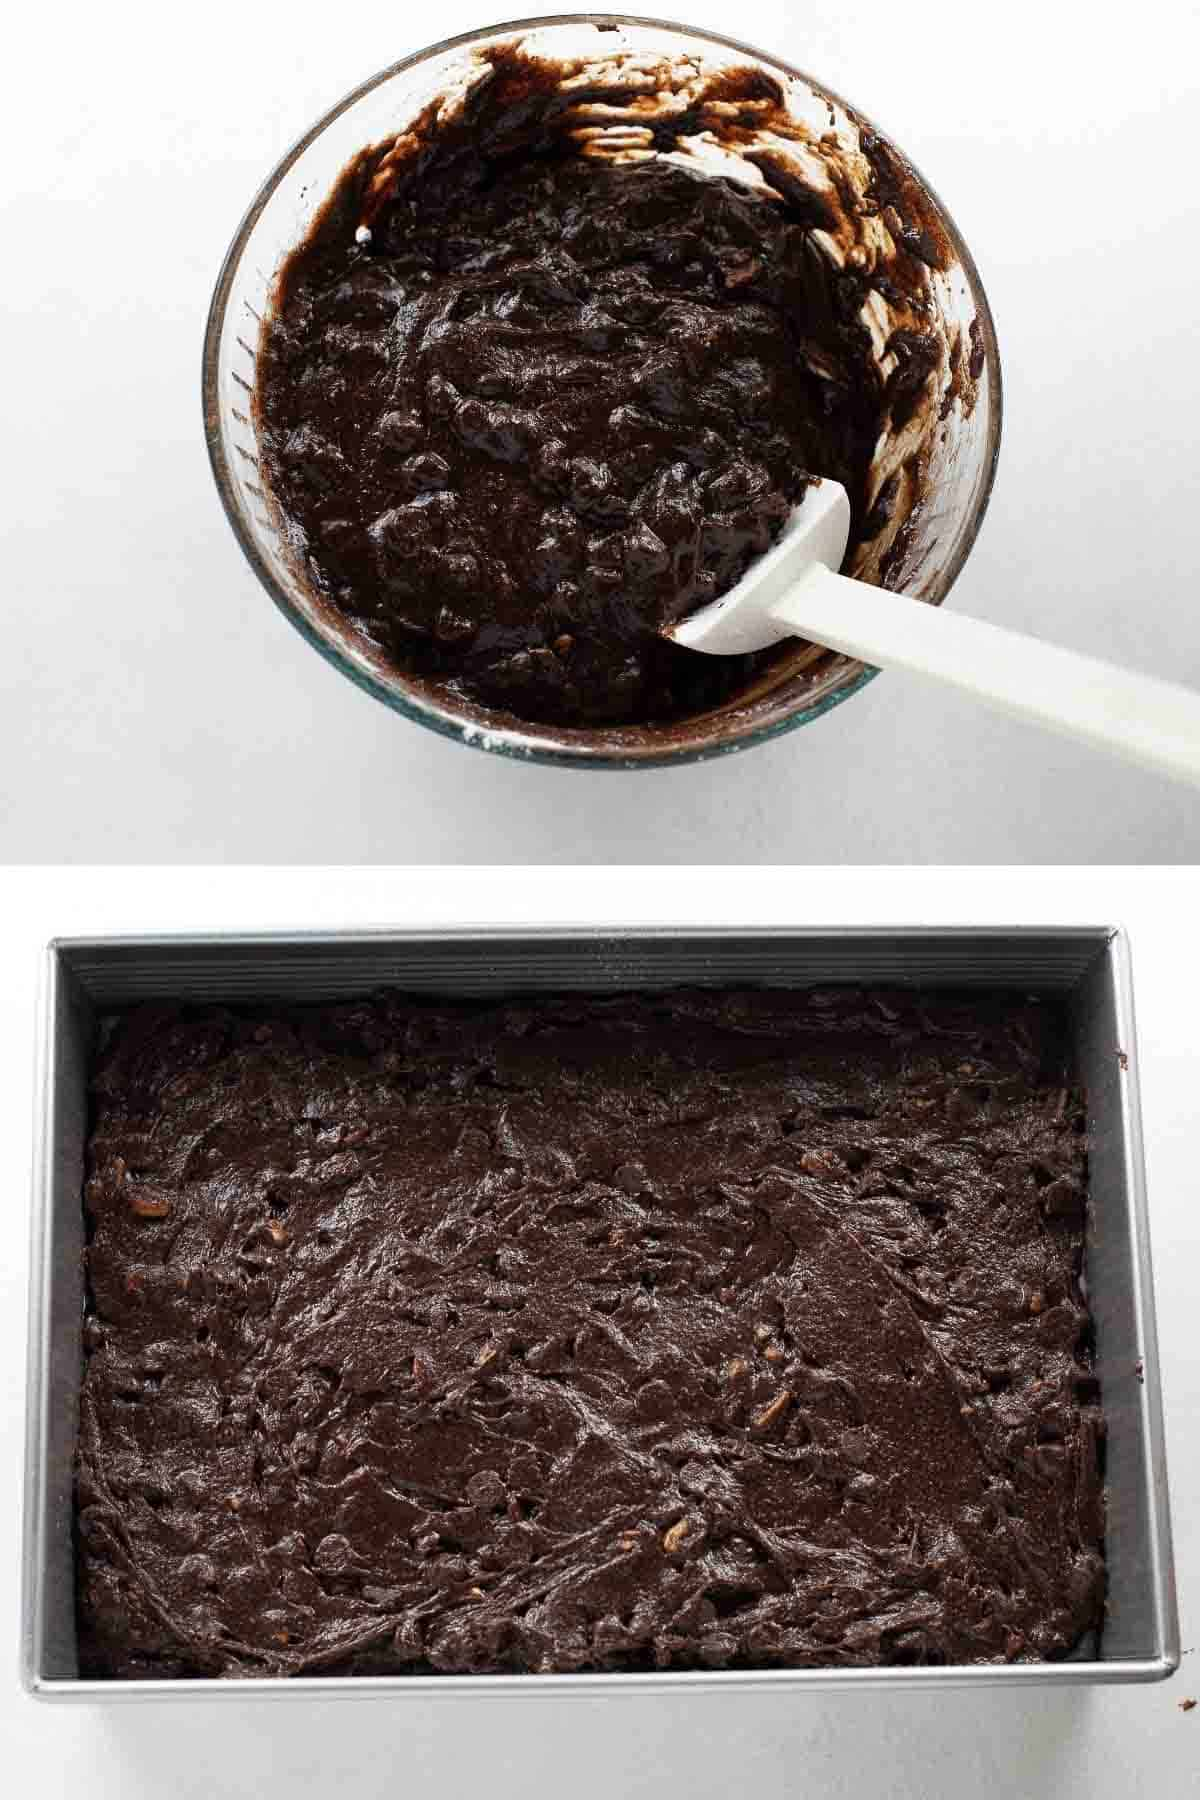 brownie batter in mixing bowl and spread into metal baking dish